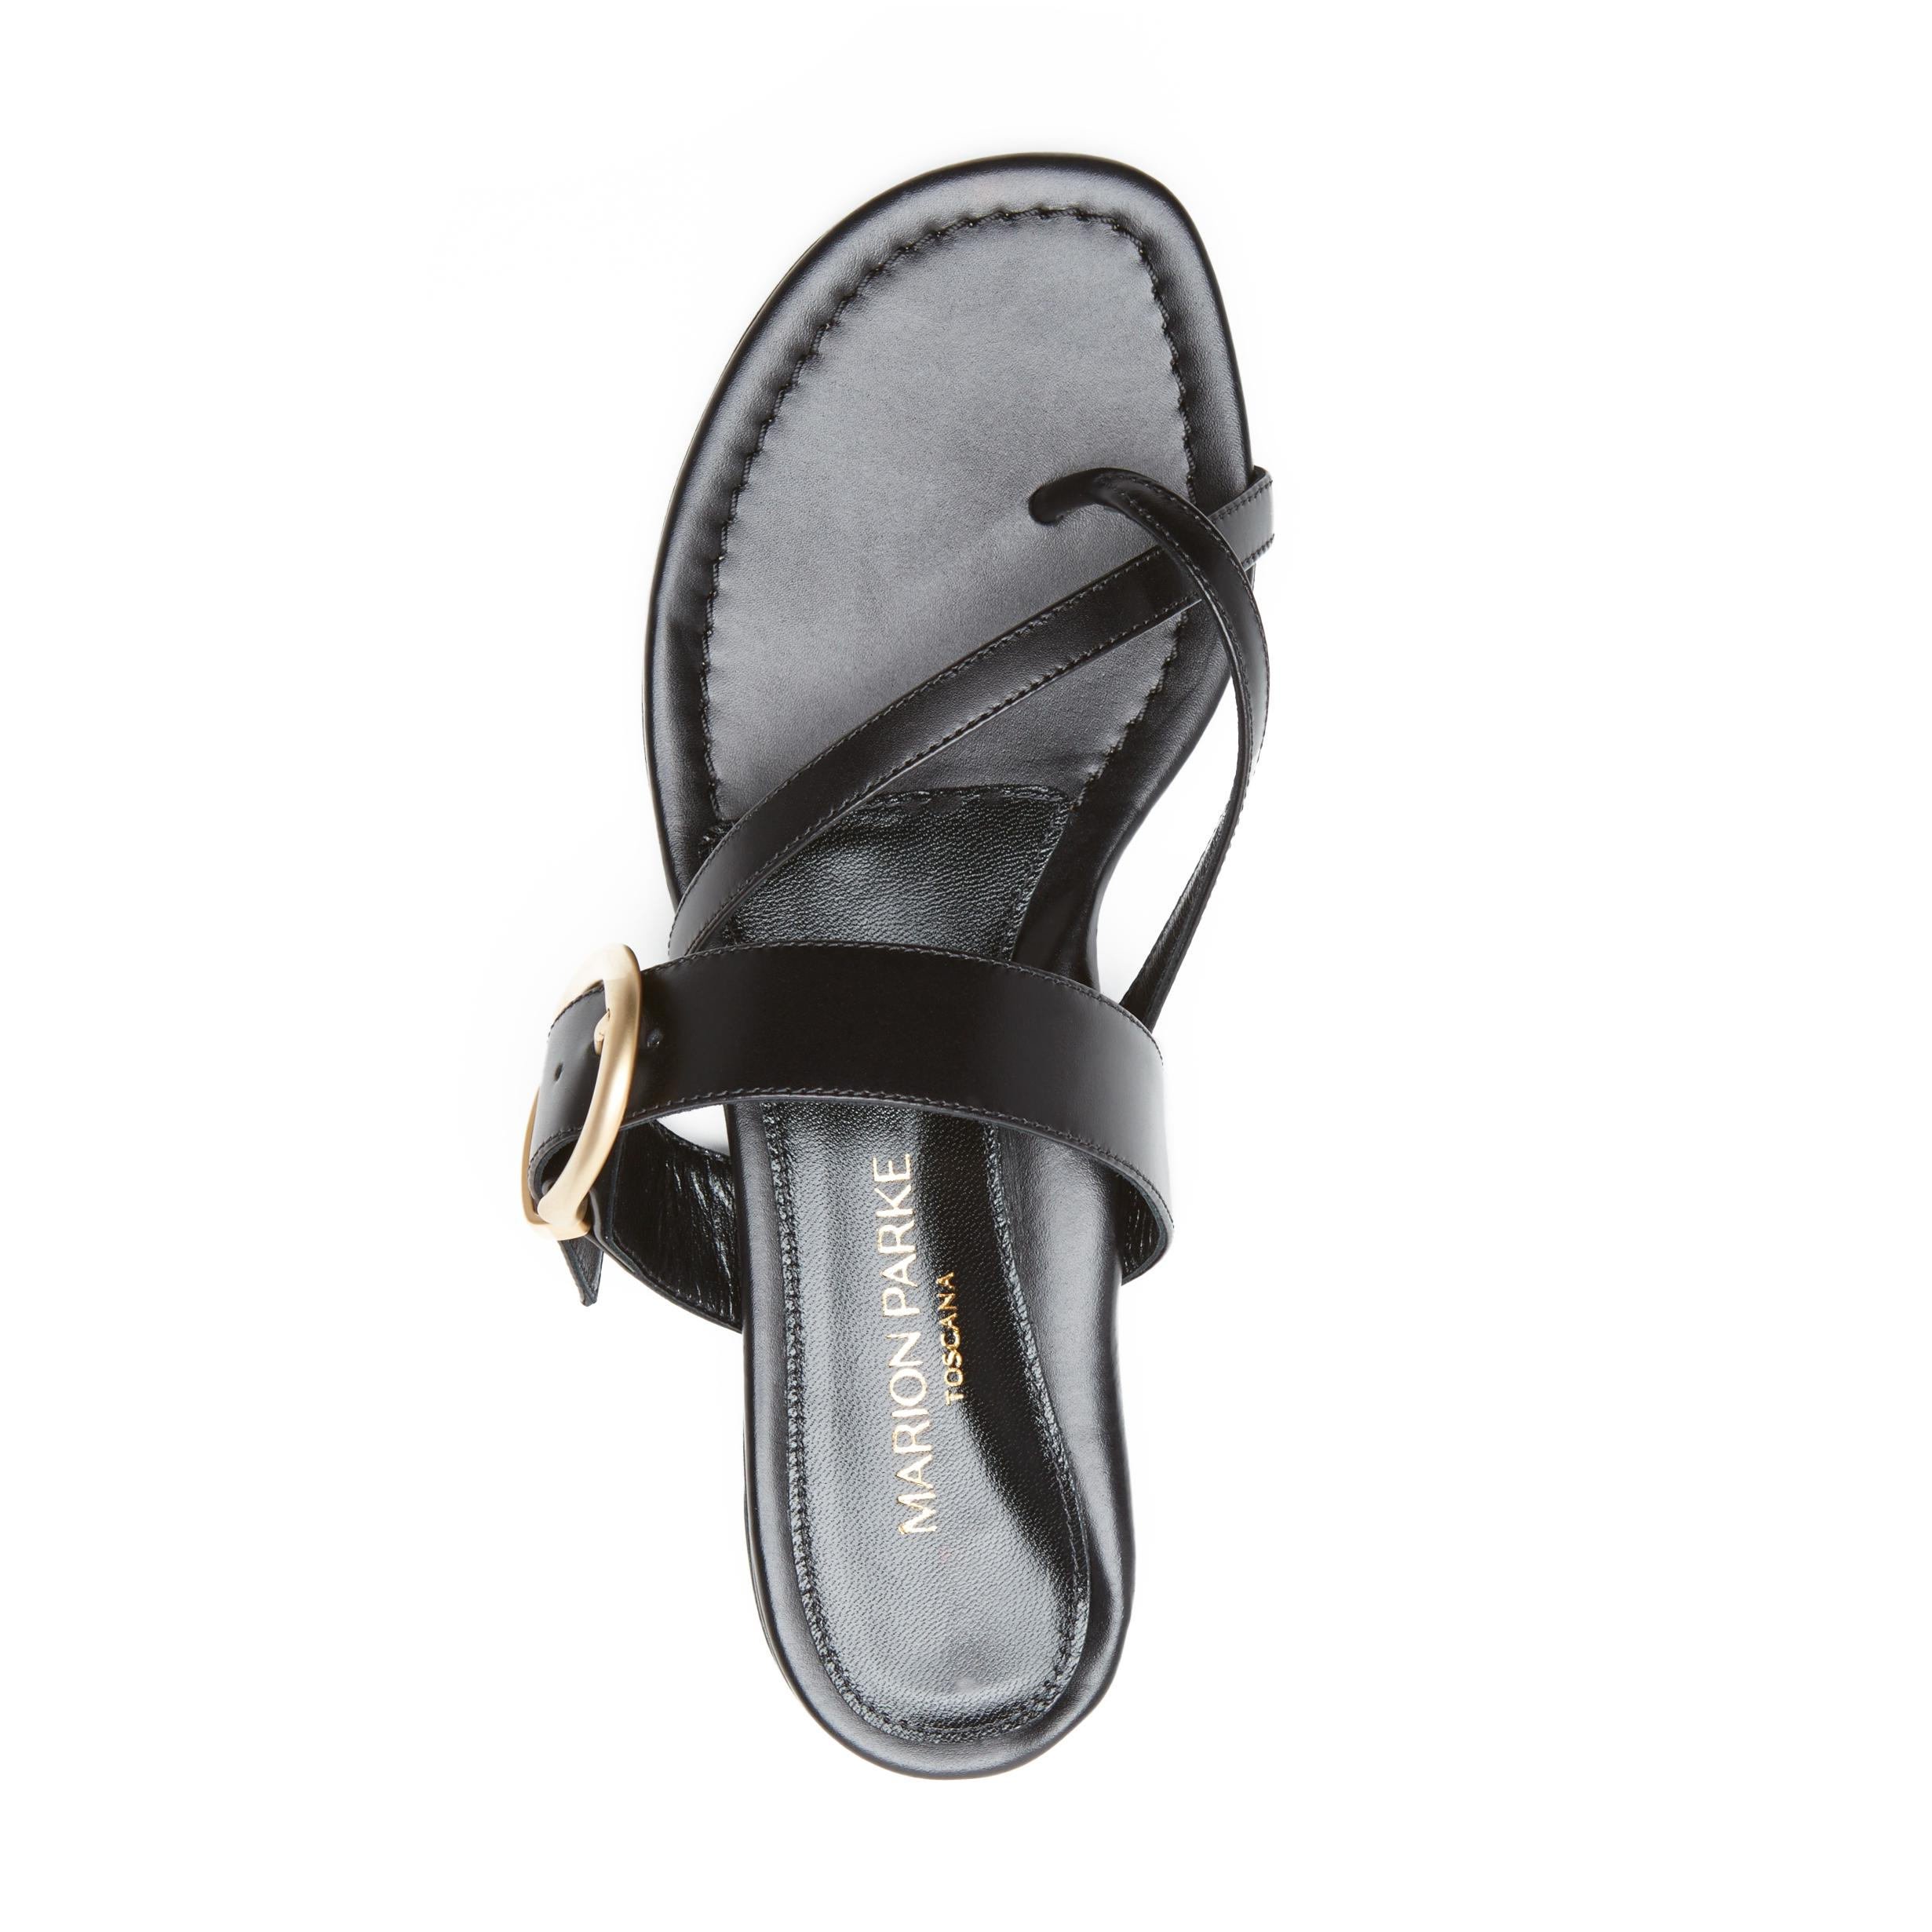 Hayley | Leather Thong Sandal With Metal Buckle Detail 2